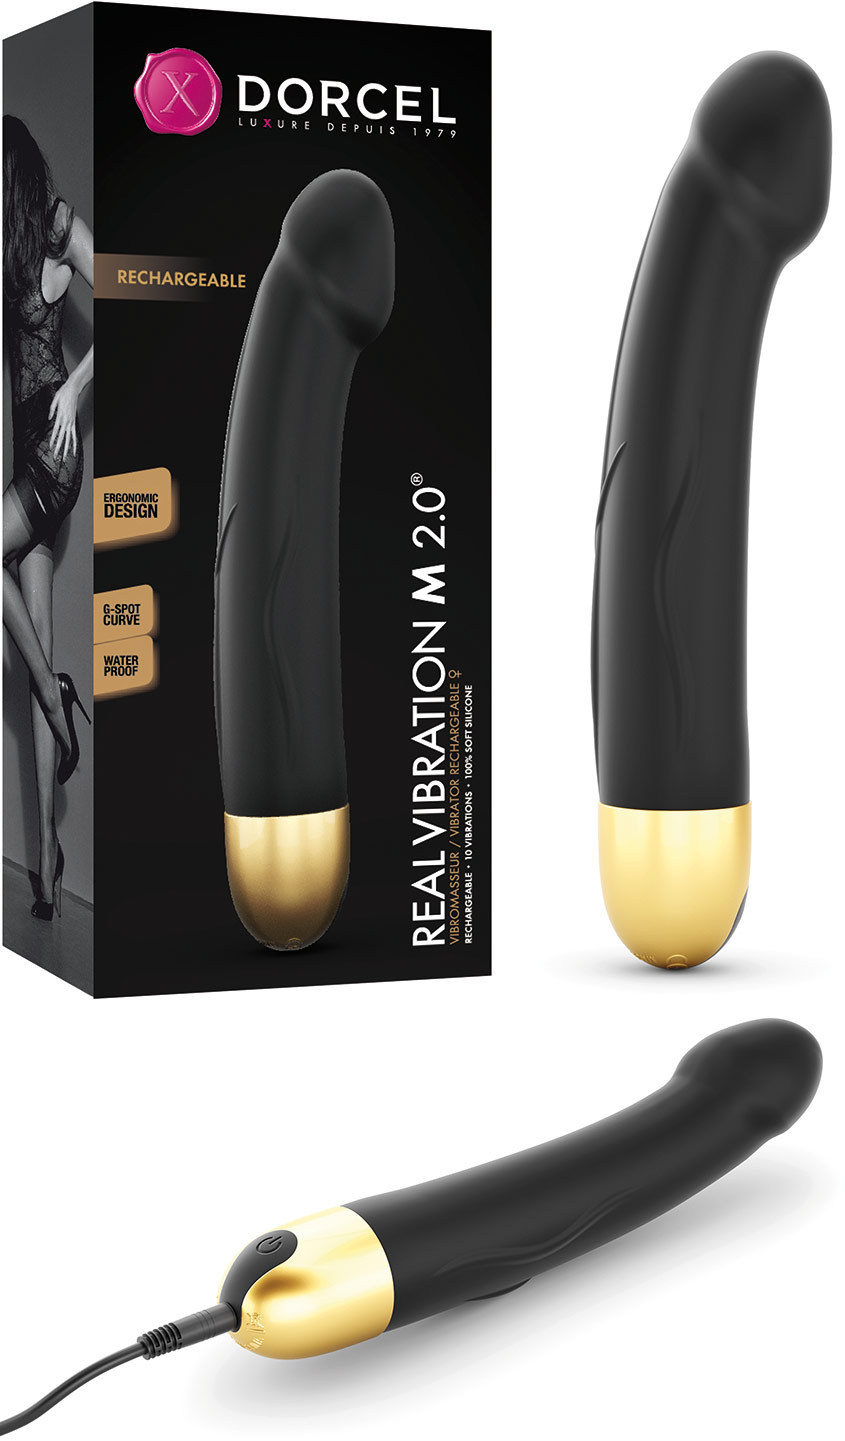 Dorcel Real Vibration M 2.0 Vibrator - Black & gold